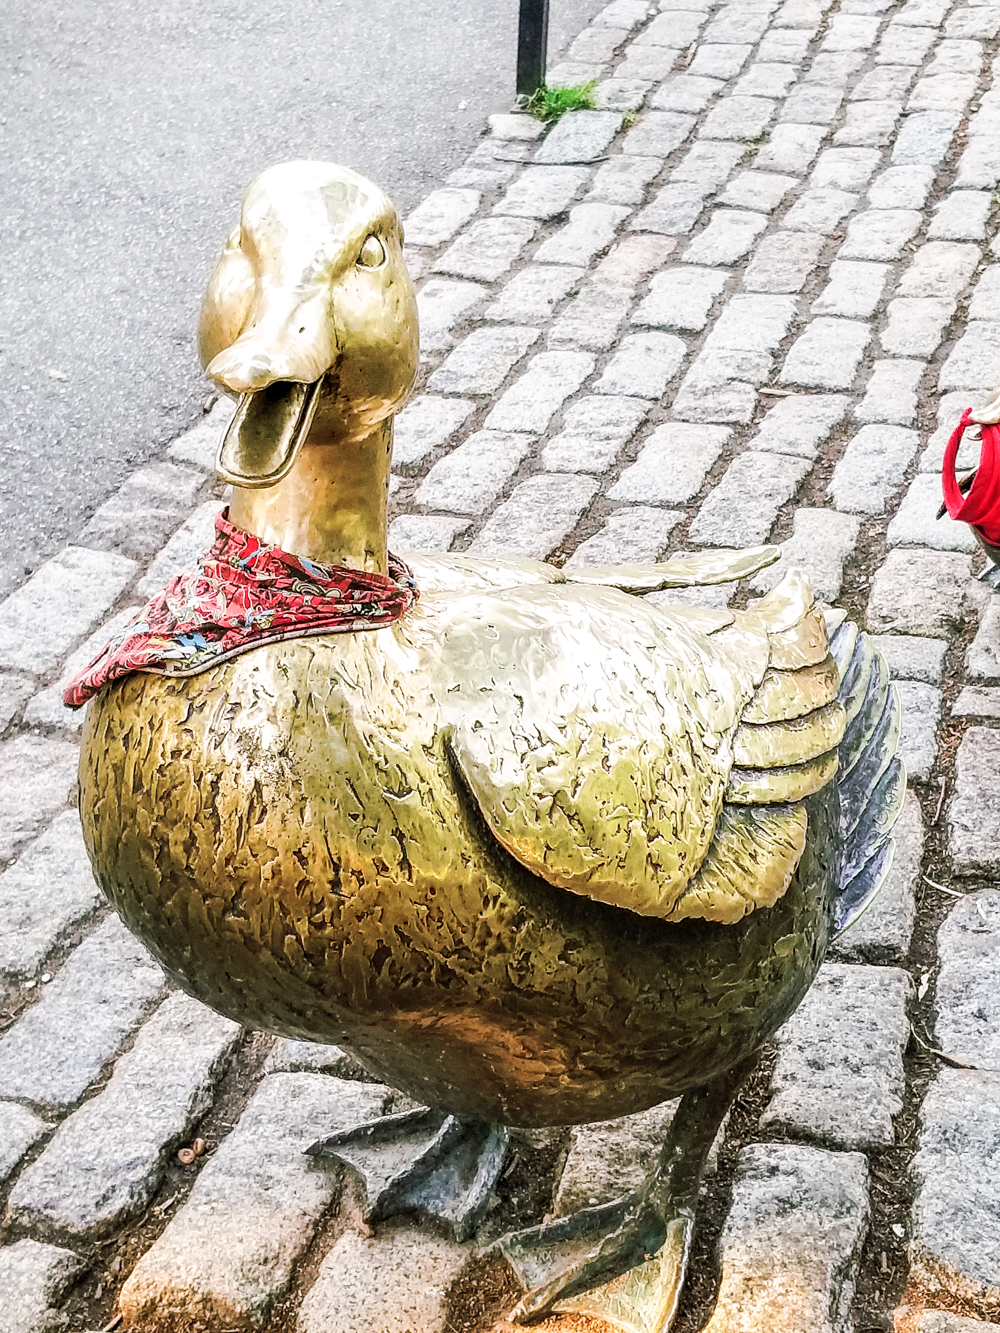 Mama duck in Make Way for Ducklings Statue